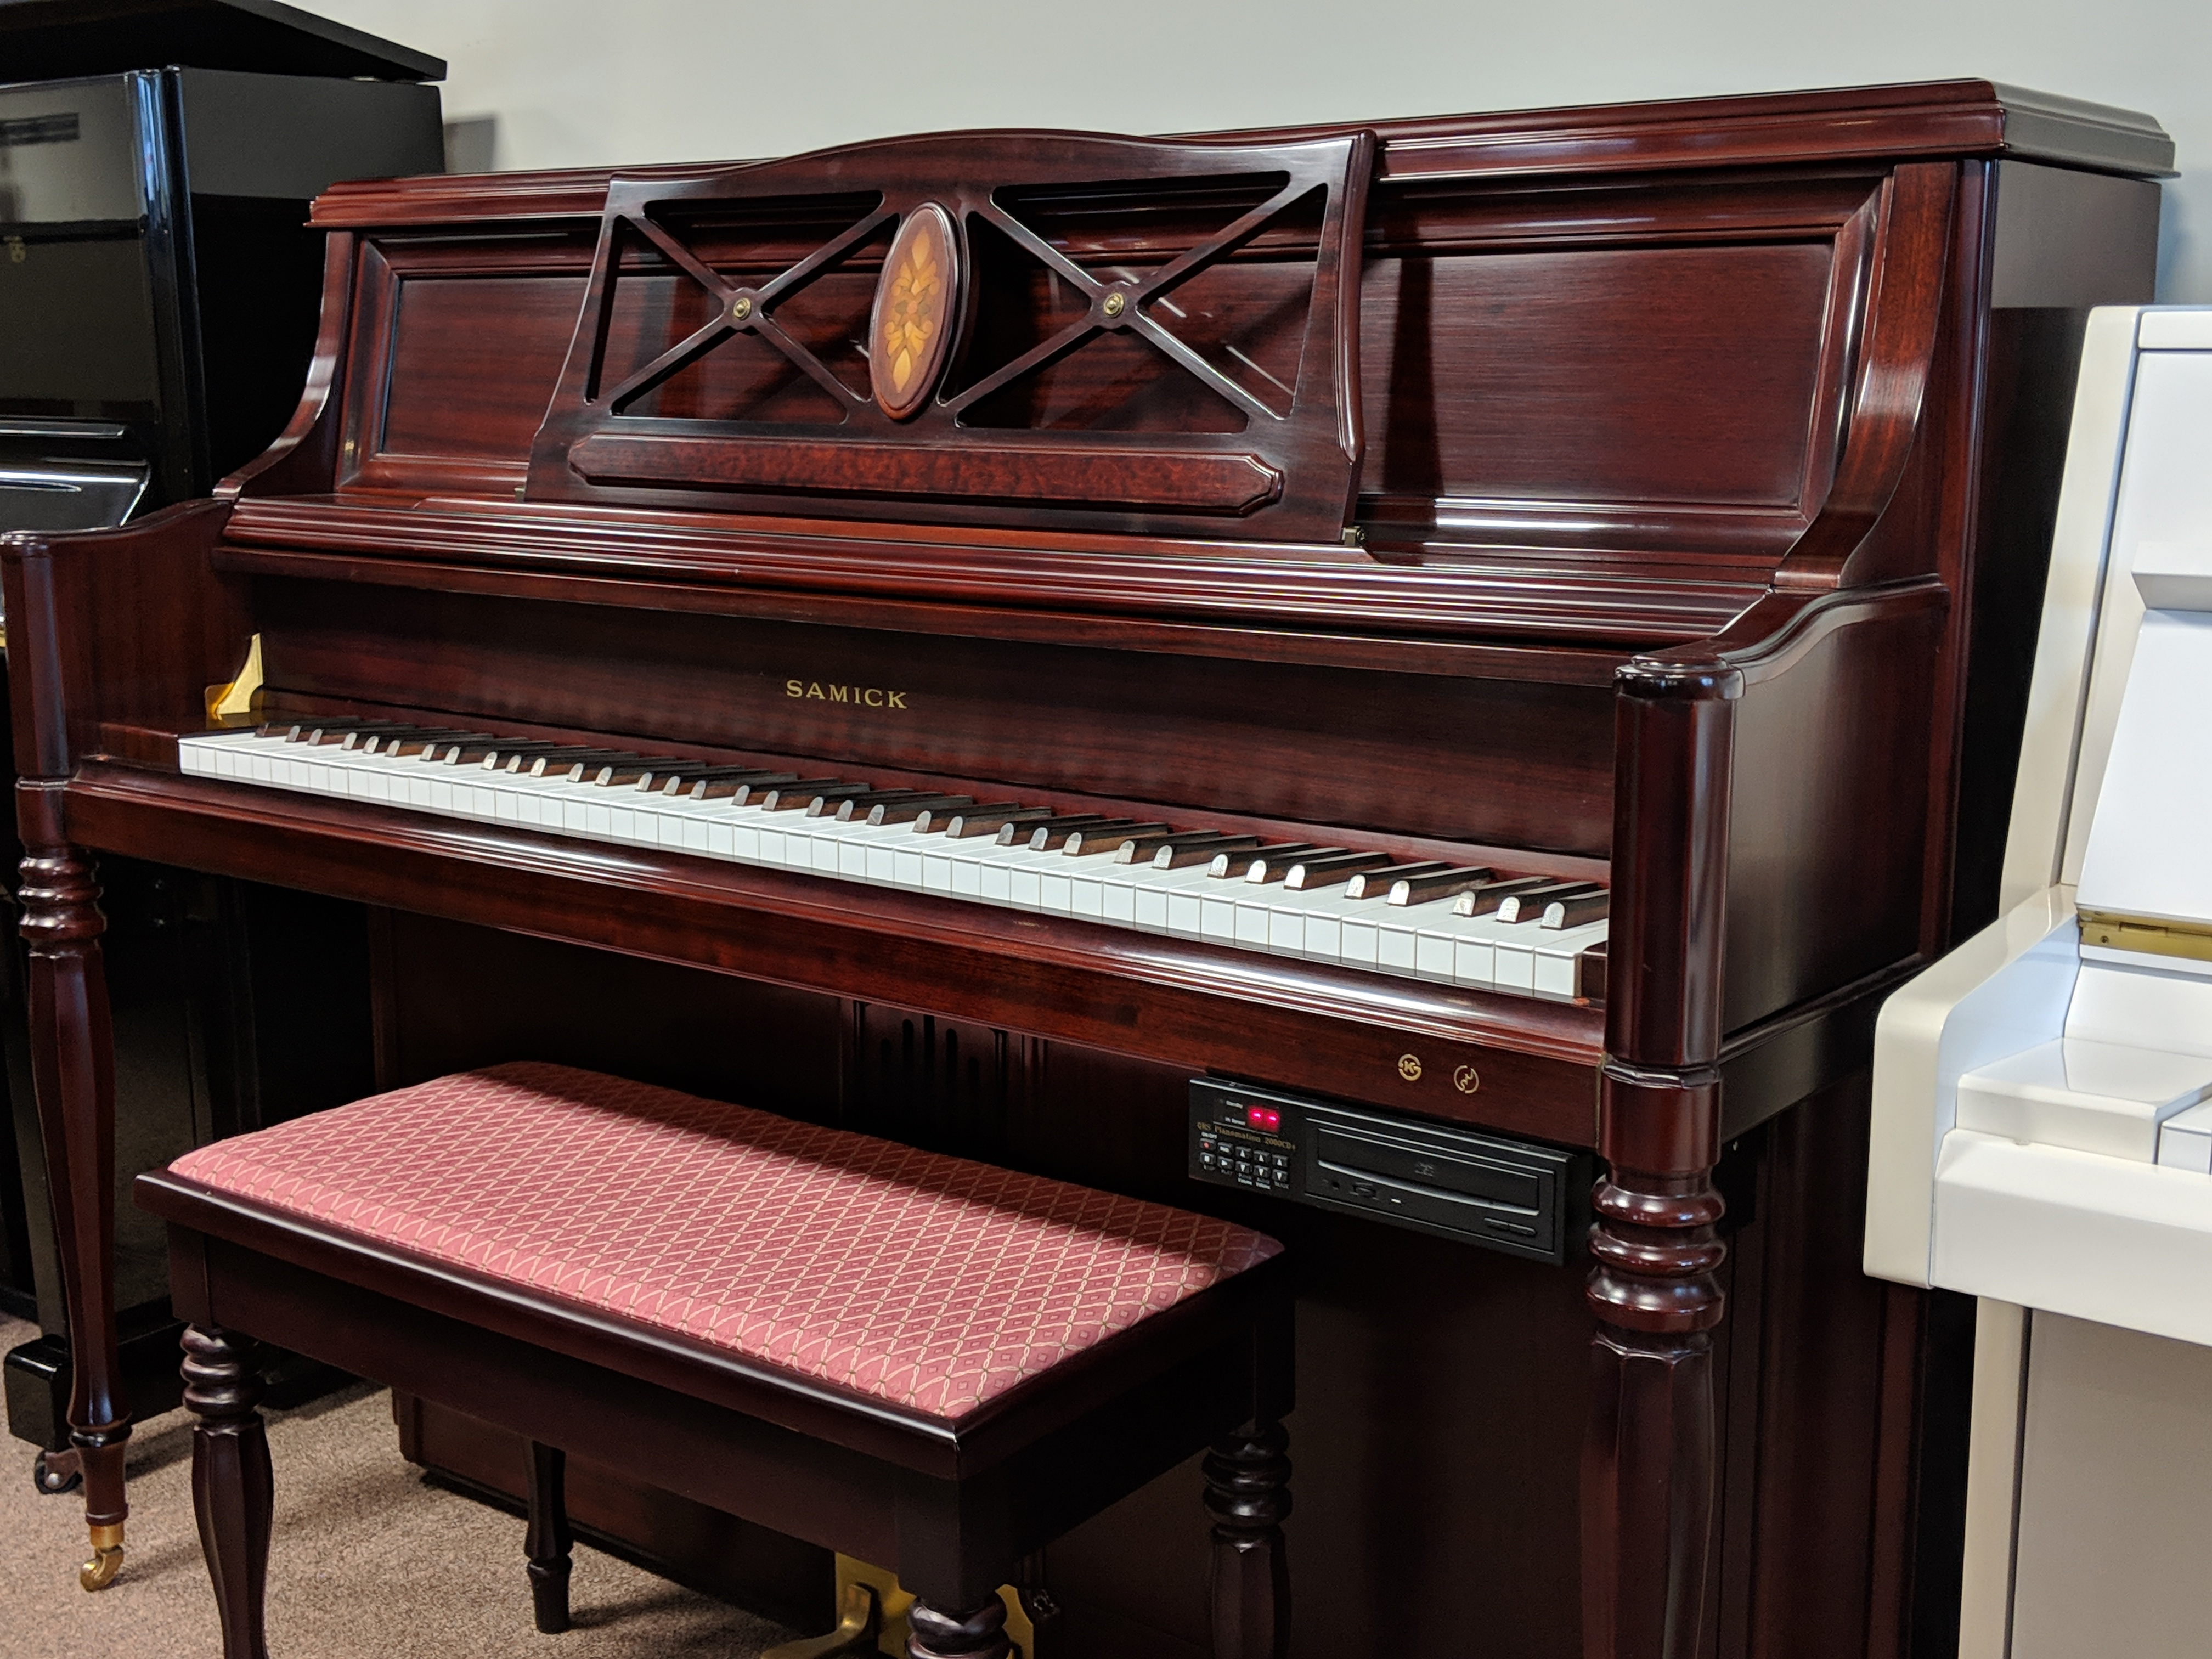 samick upright piano with digital player system piano mill. Black Bedroom Furniture Sets. Home Design Ideas